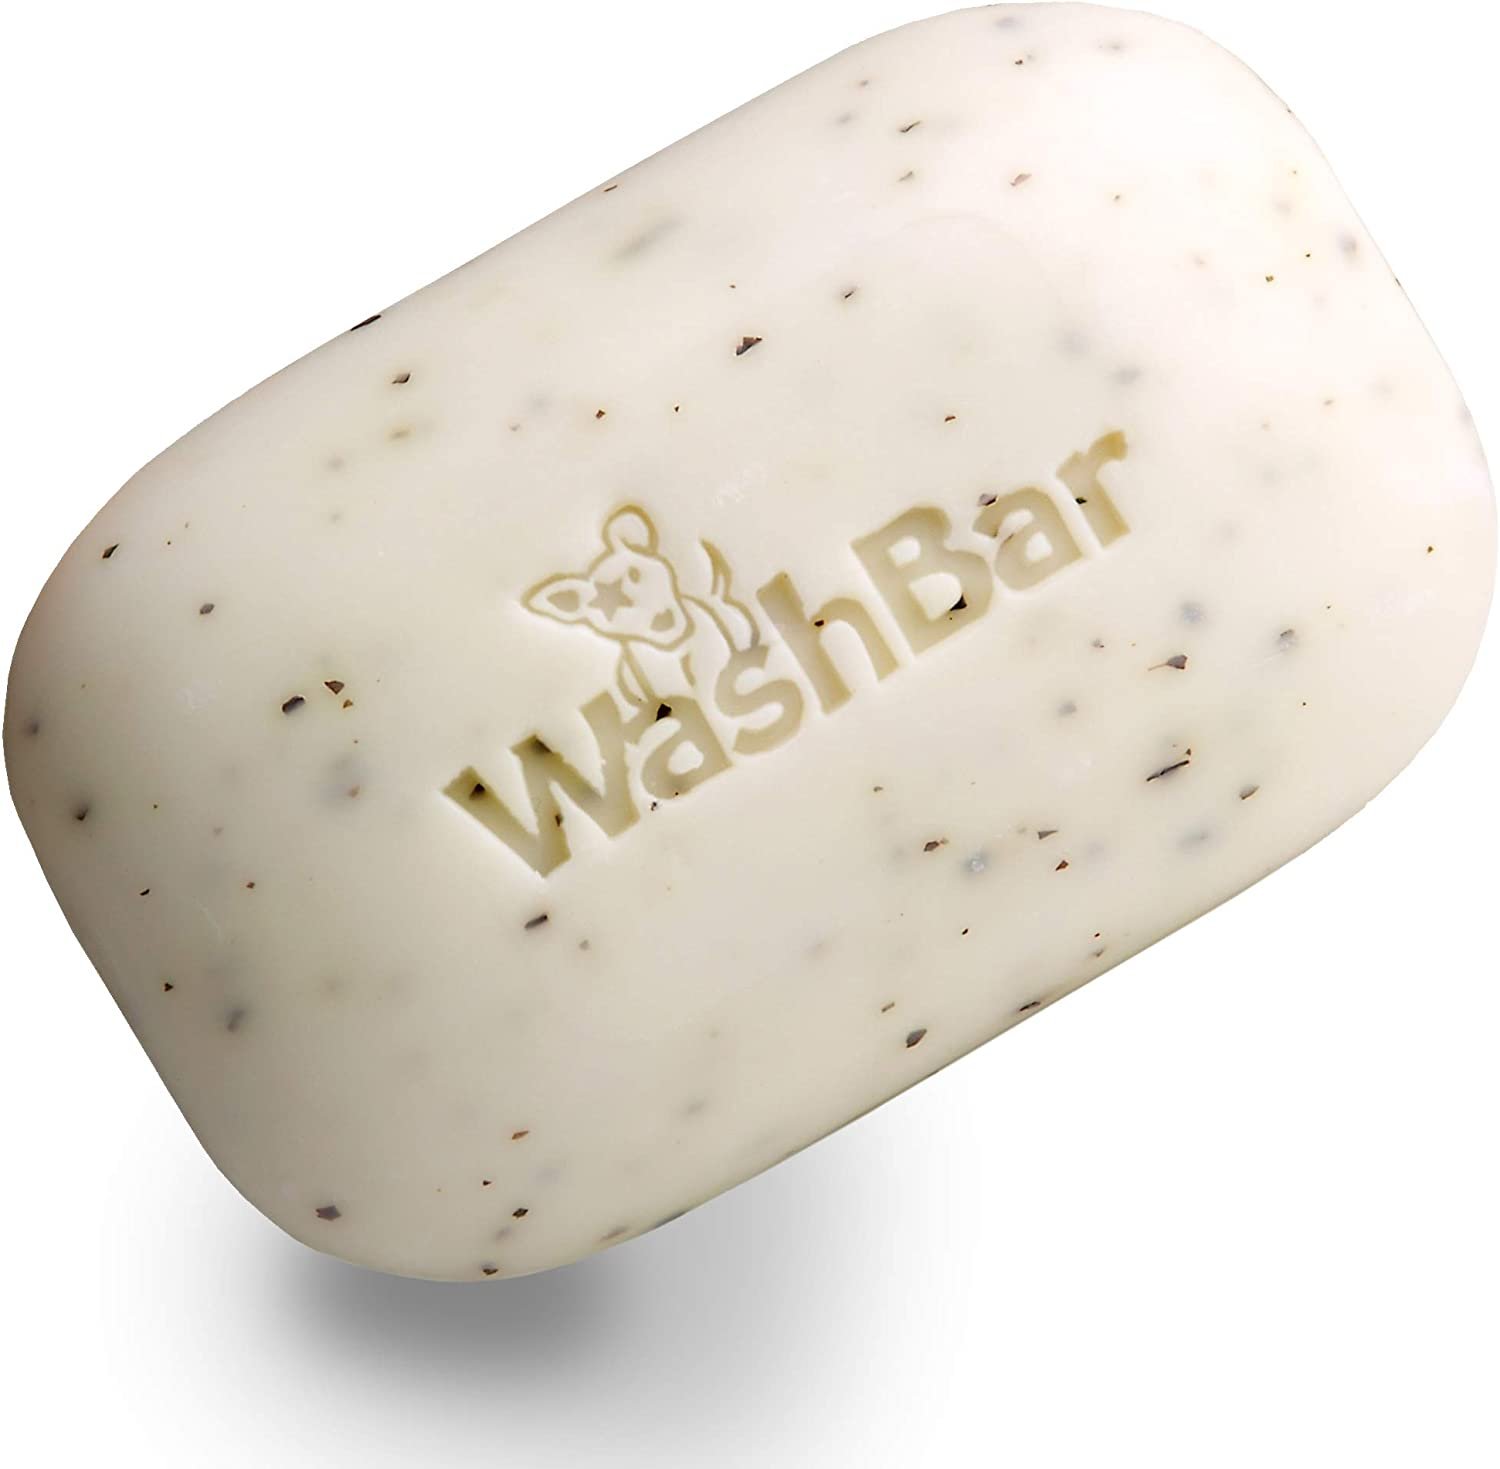 Bar of soap for dogs with WashBar text